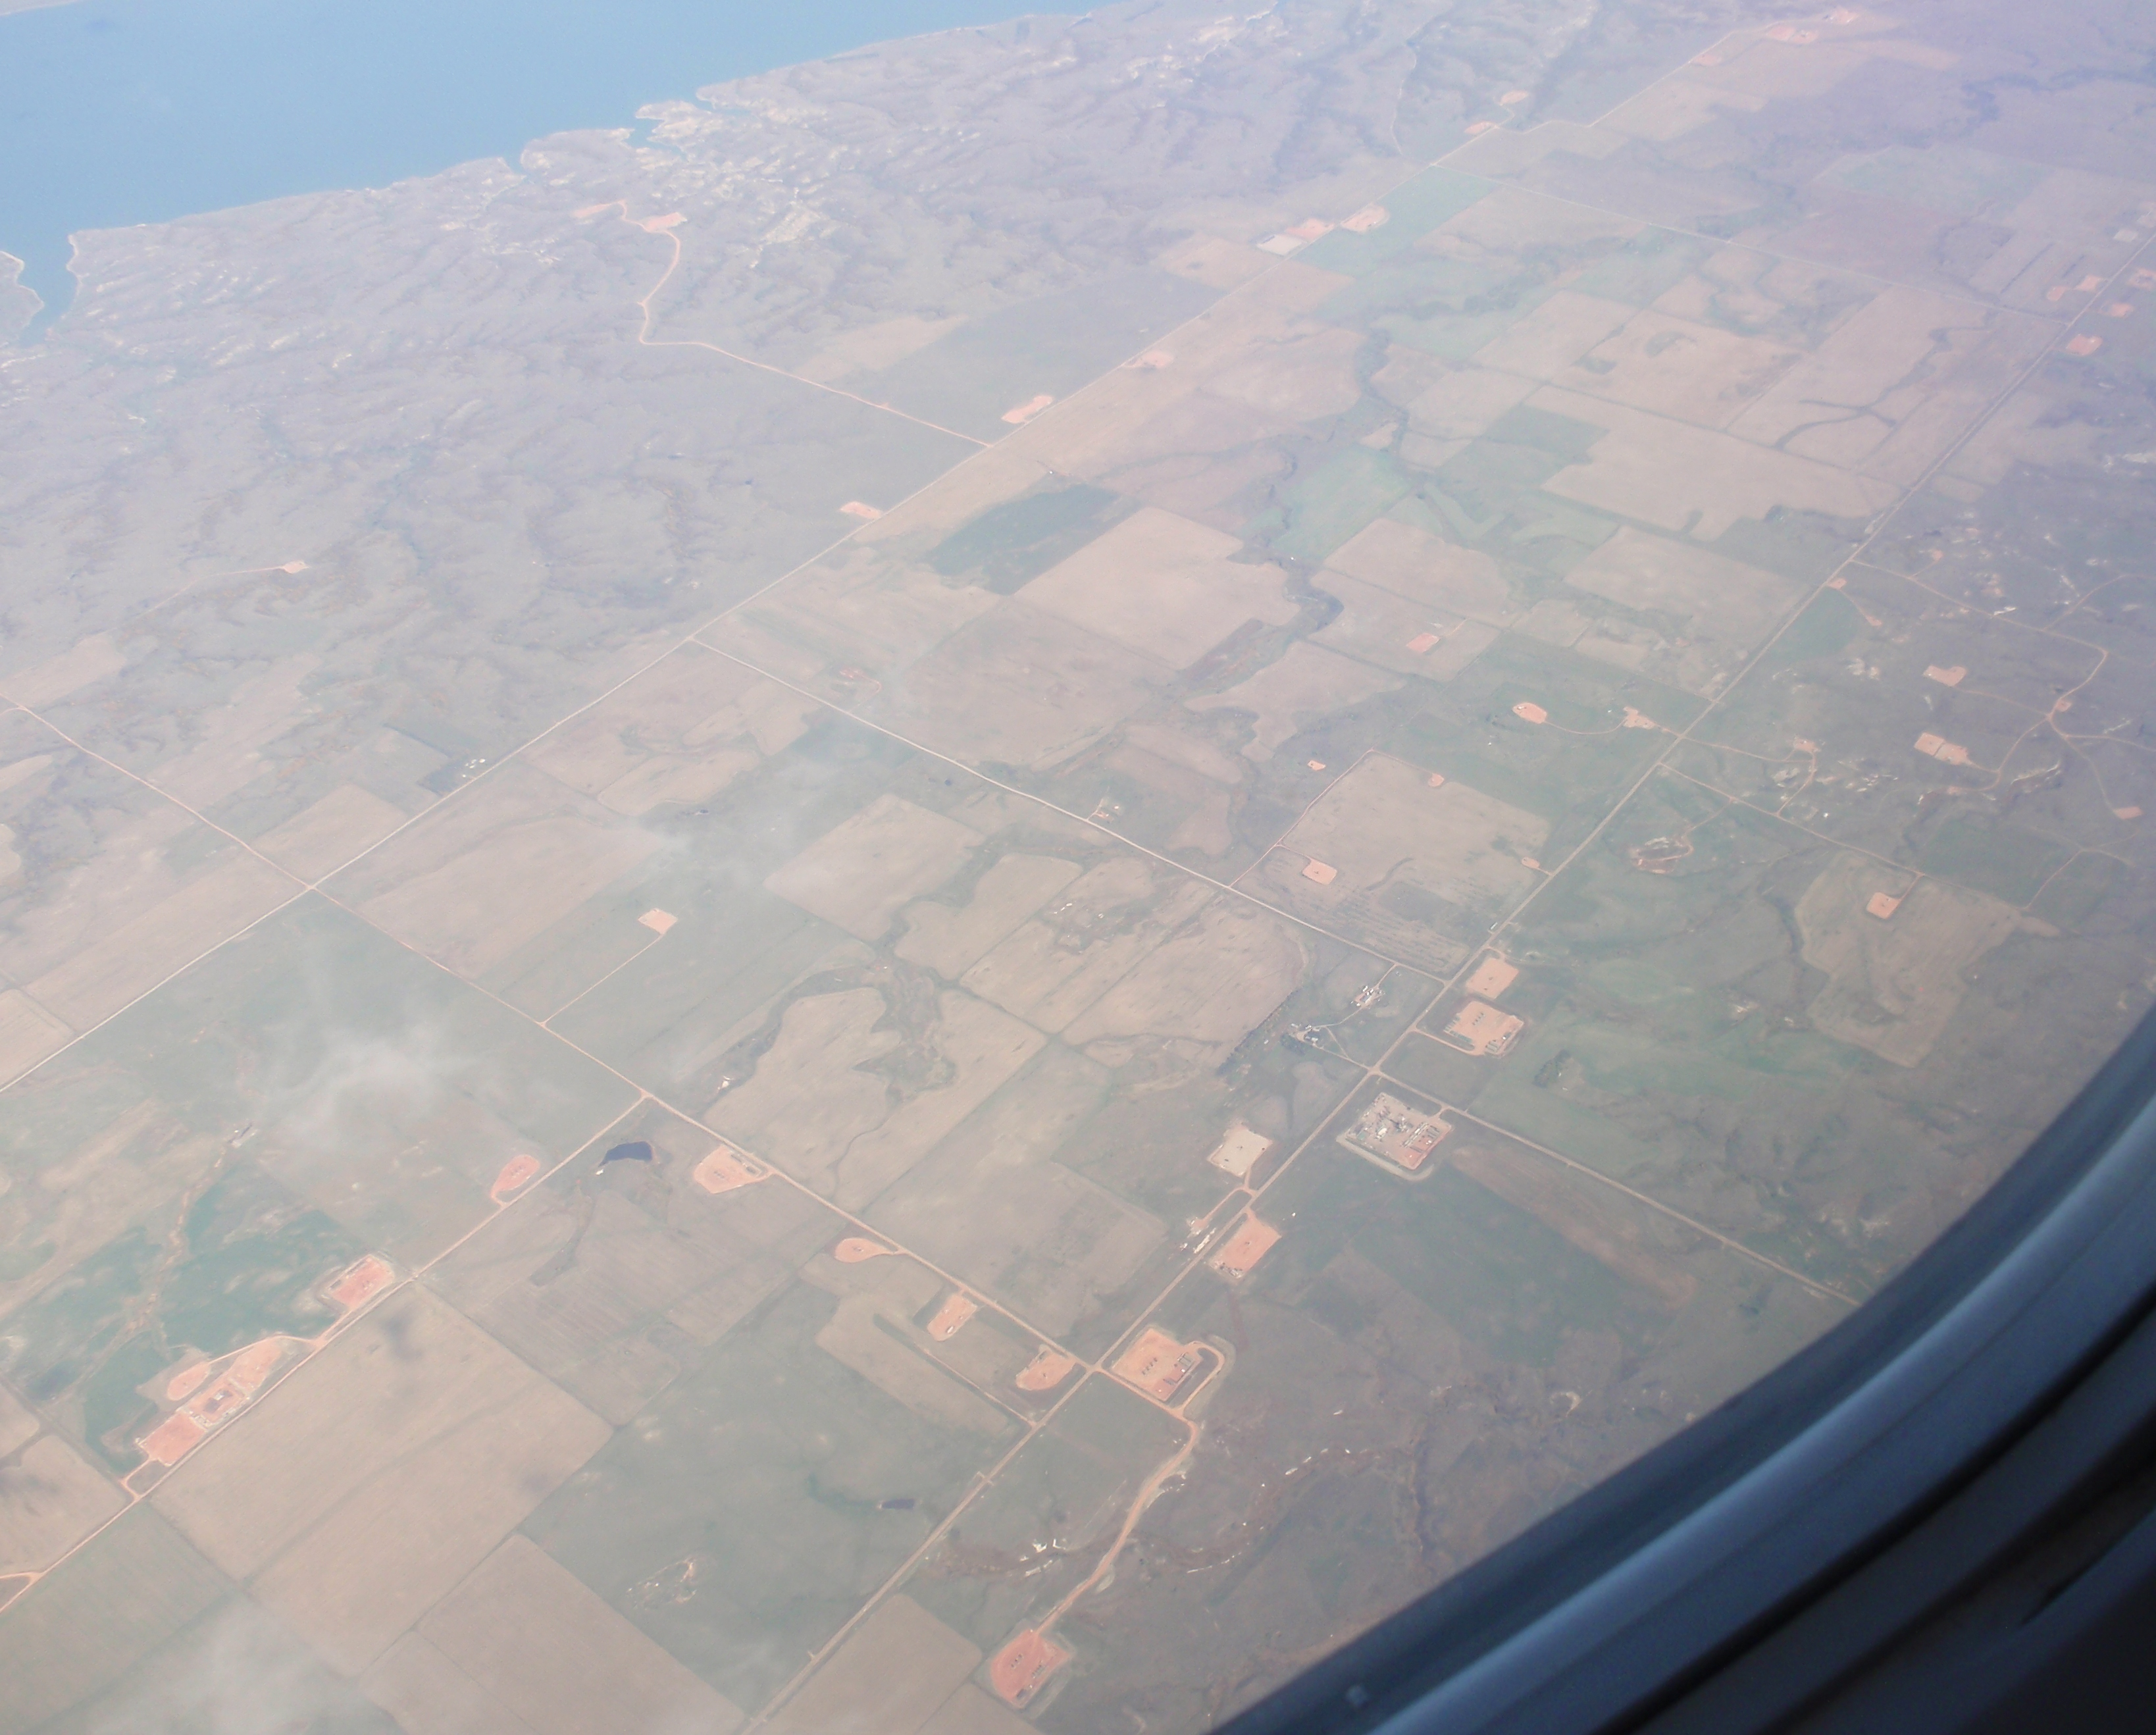 Each of those little brown spots is a well pad with 1 or 4 wells, each of which can produce around half a million barrels of oil that was completely unrecoverable two decades ago. Photo by James Ulvog.